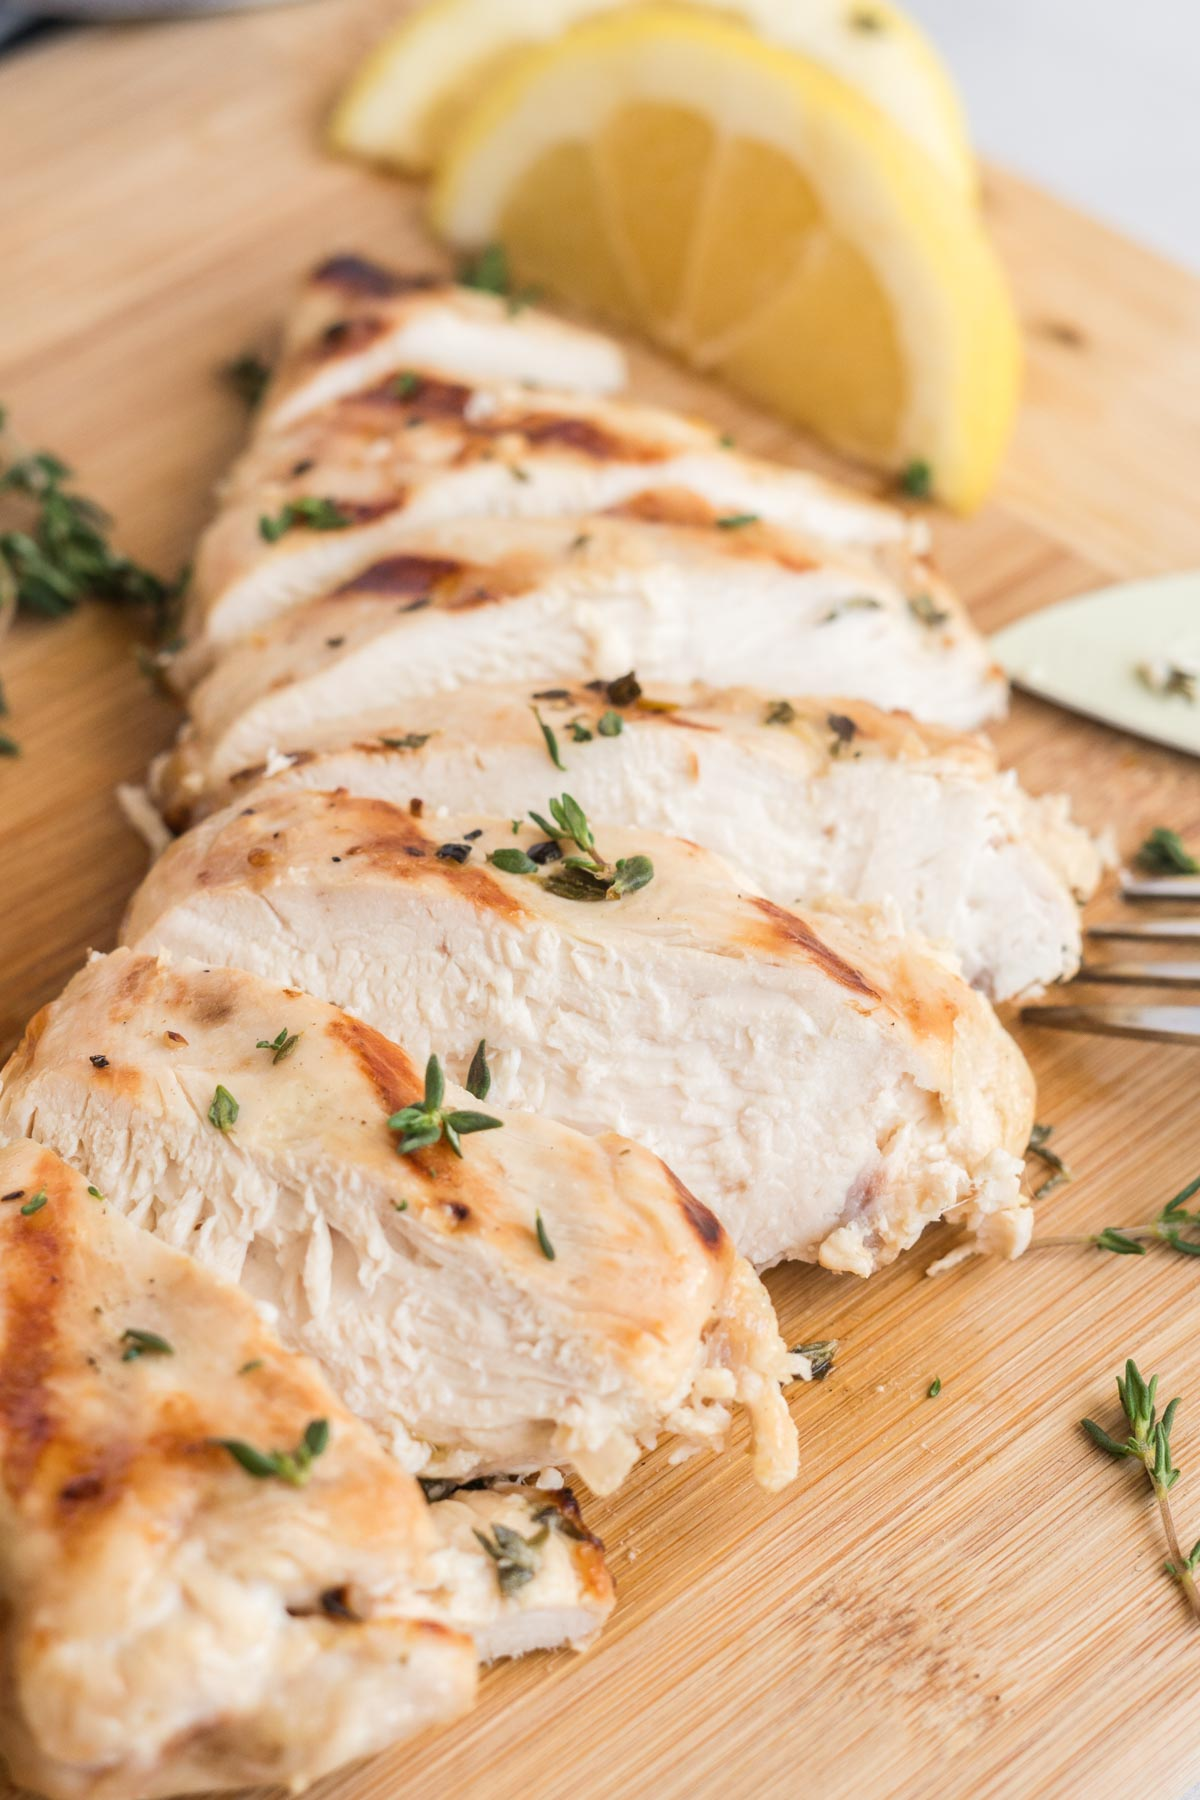 Grilled chicken breast sliced on a cutting board with lemon wedge on the side.